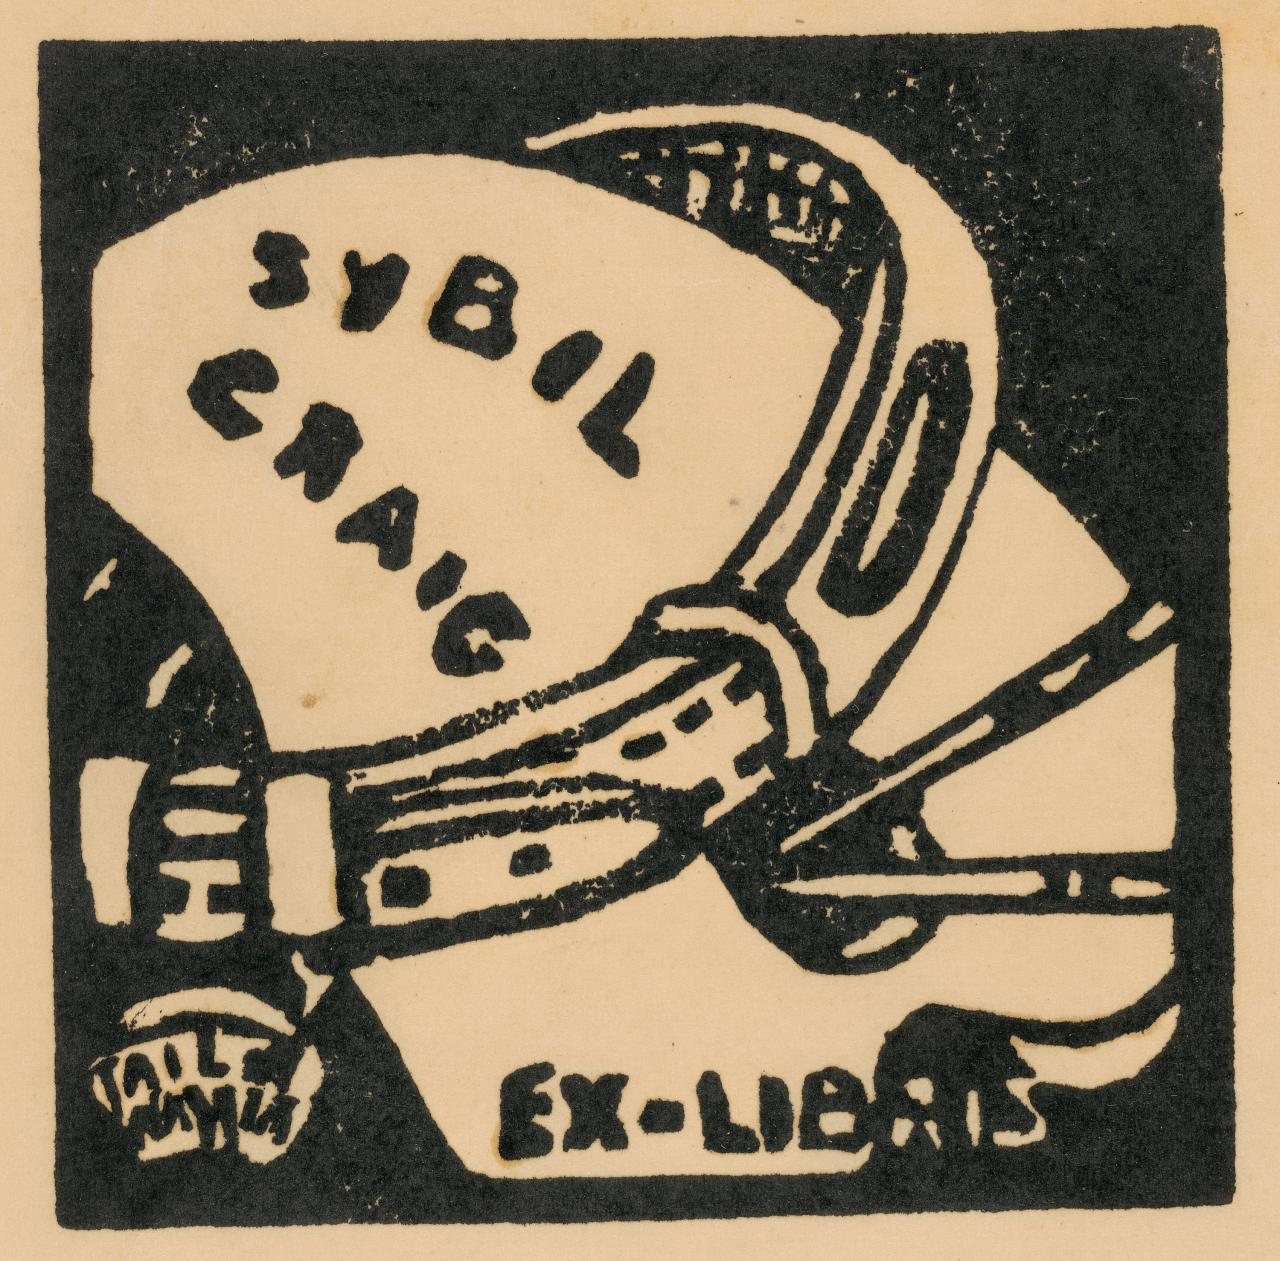 Bookplate of Sybil Craig (palette and dog collar)